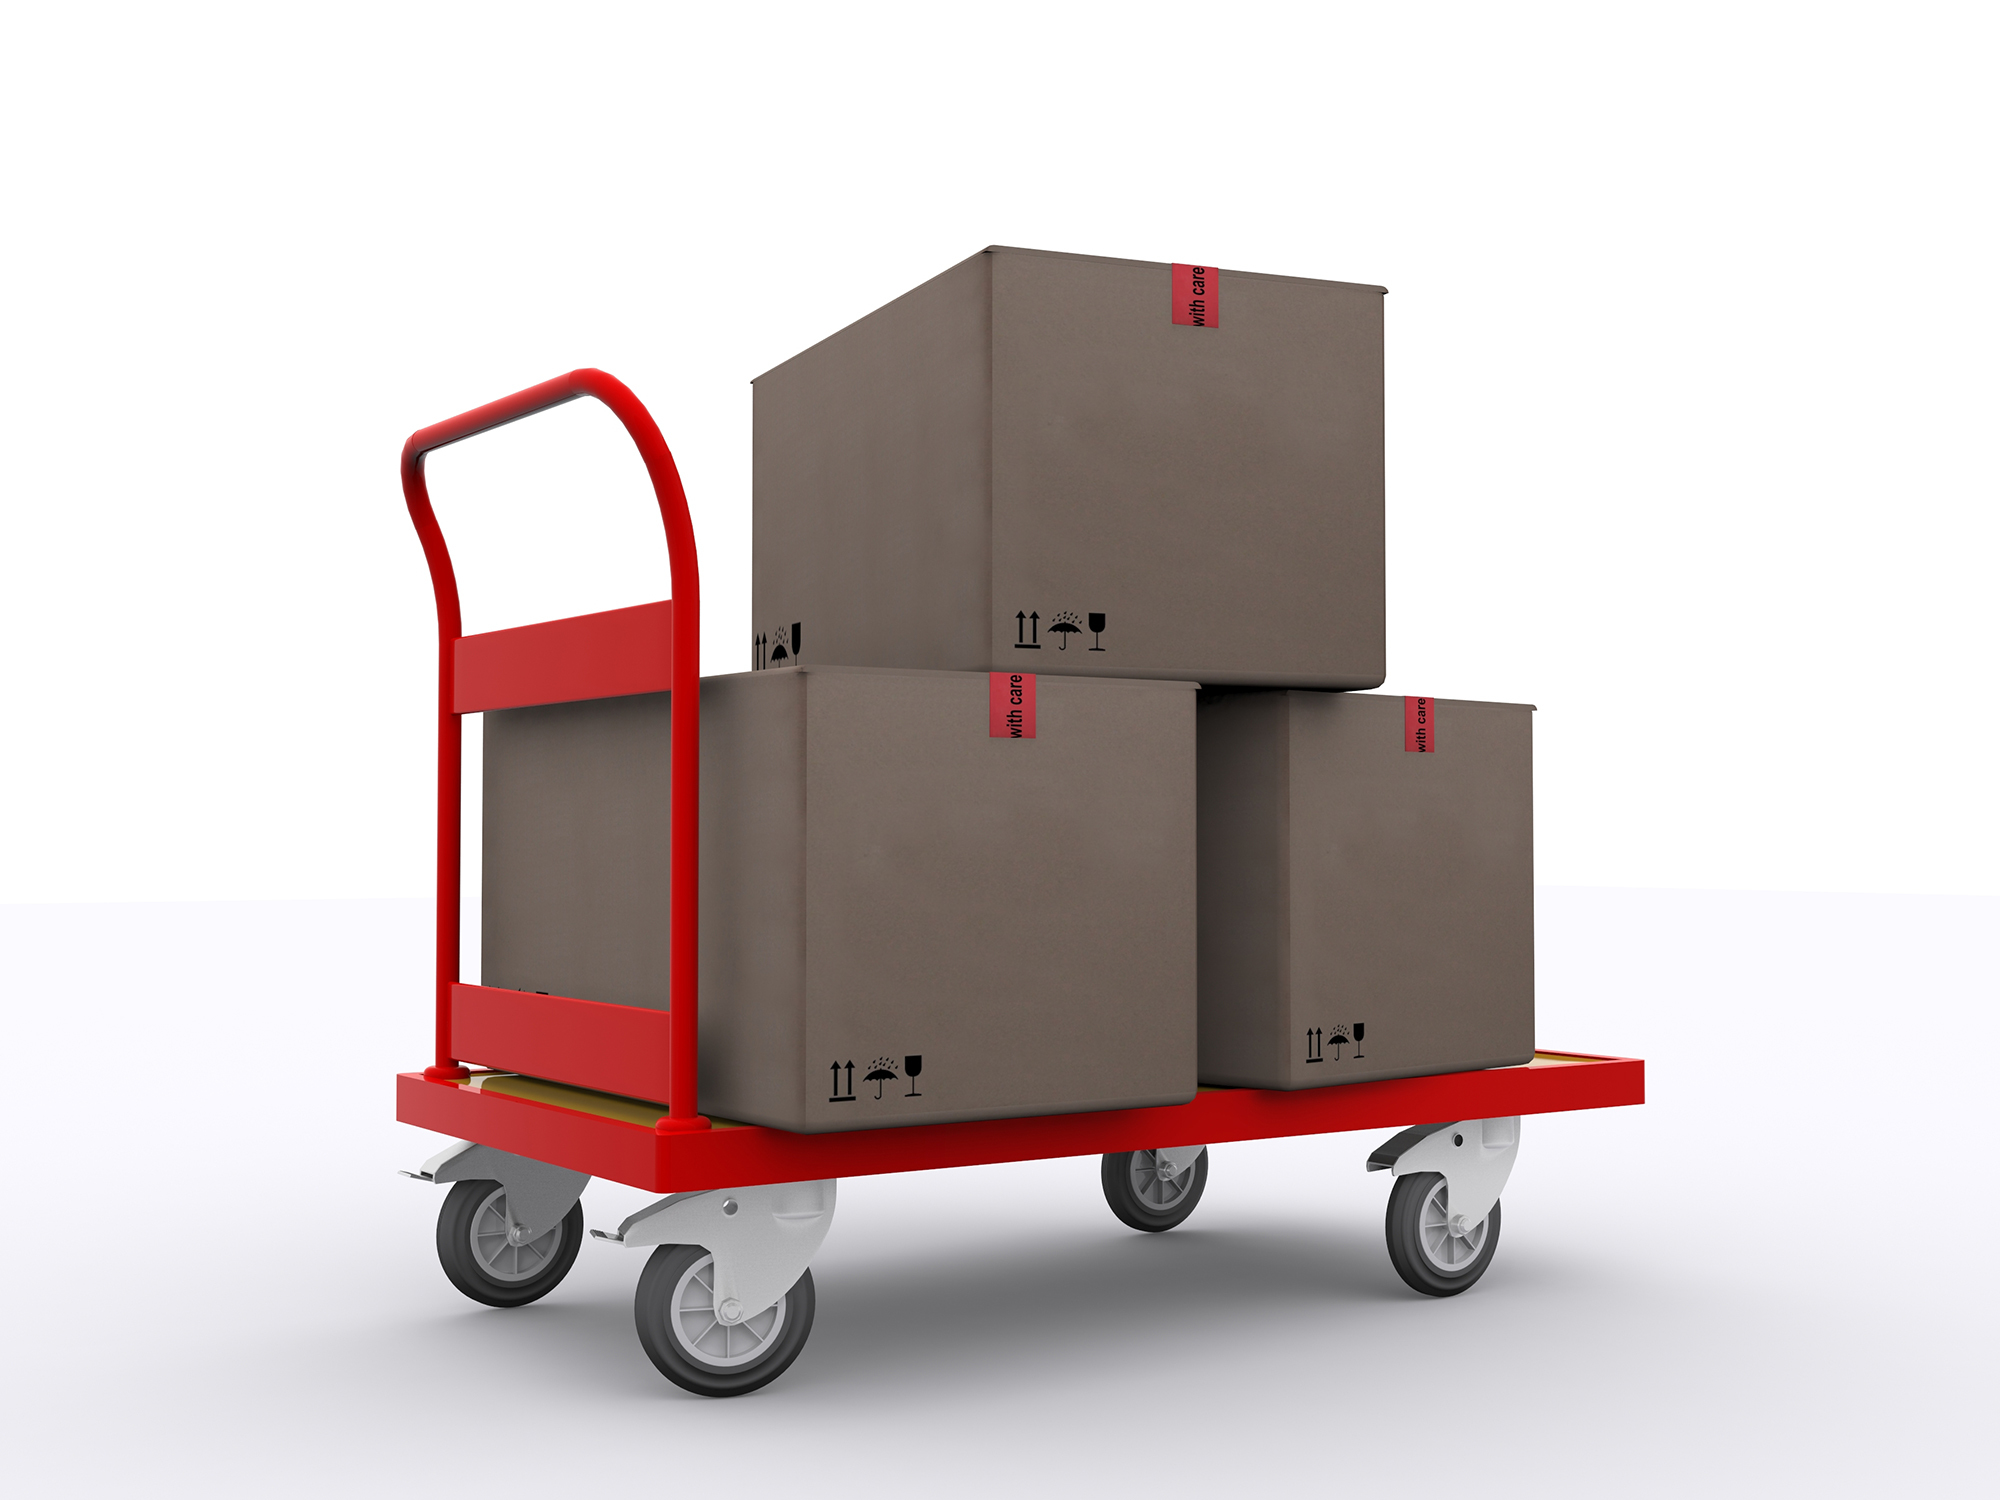 Red cart with 3 boxes